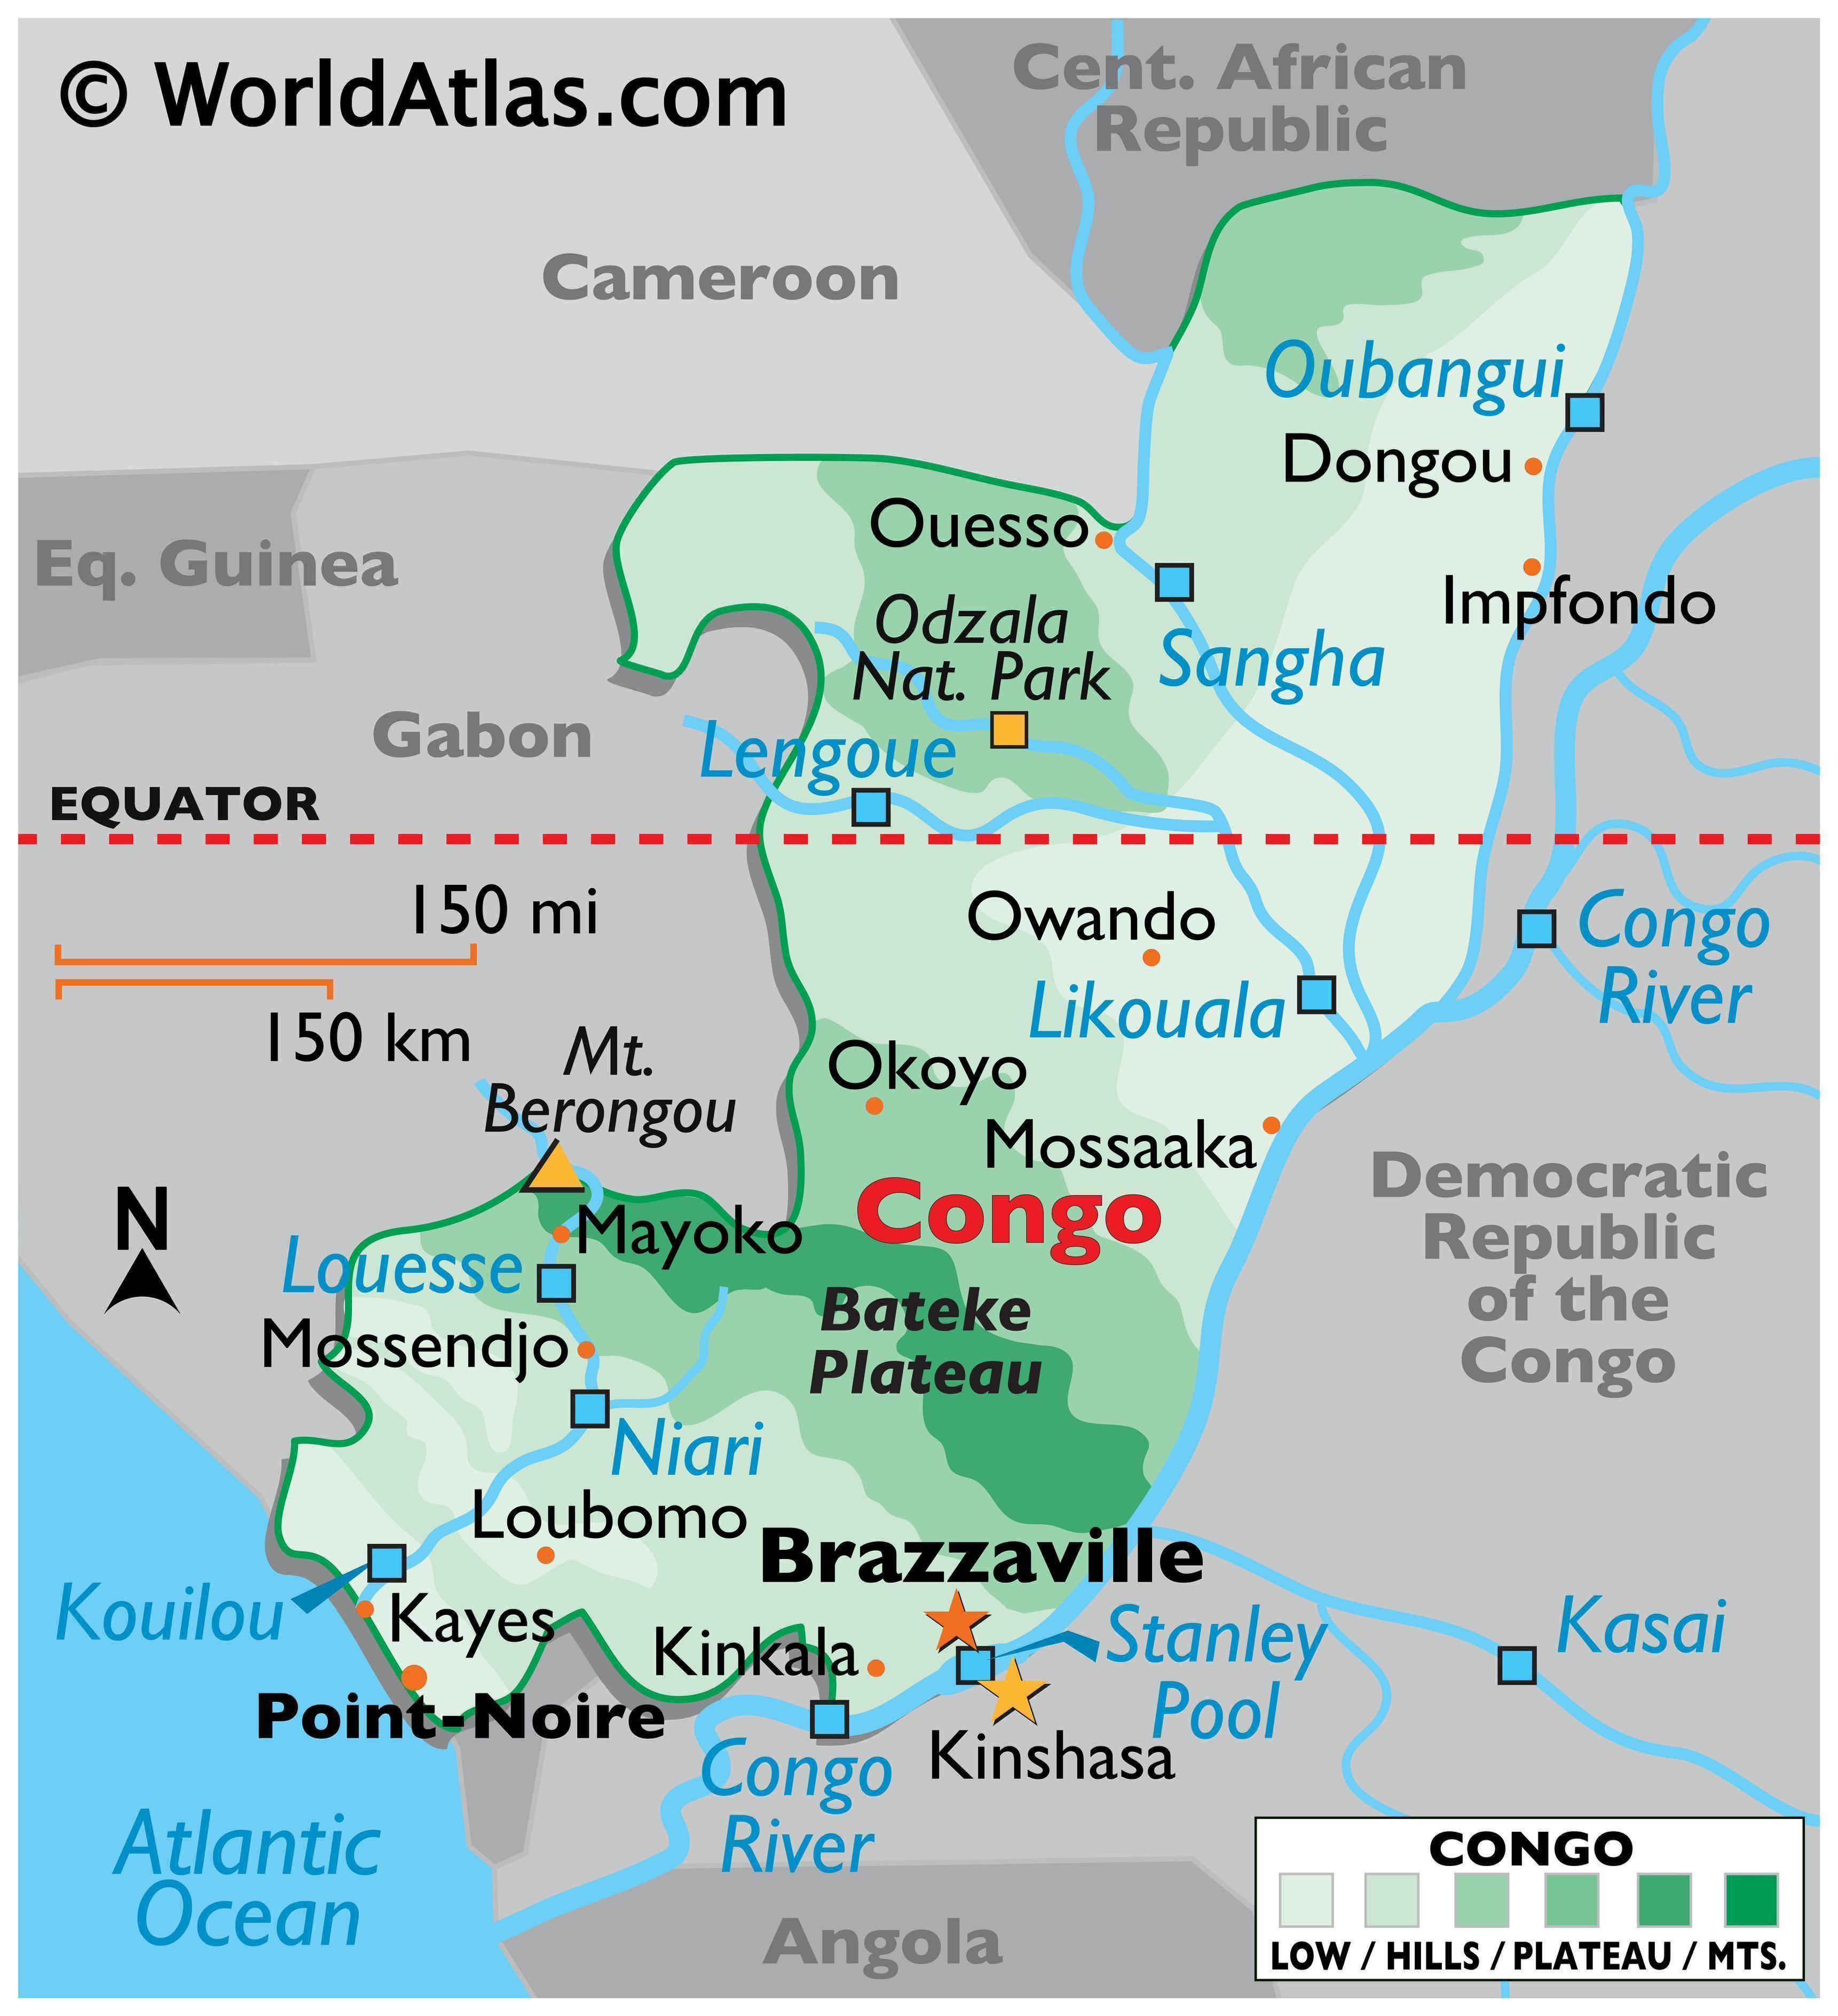 Physical Map of the Republic of the Congo with state boundaries, relief, major physical features like rivers, lakes, mountains, extreme points, etc.